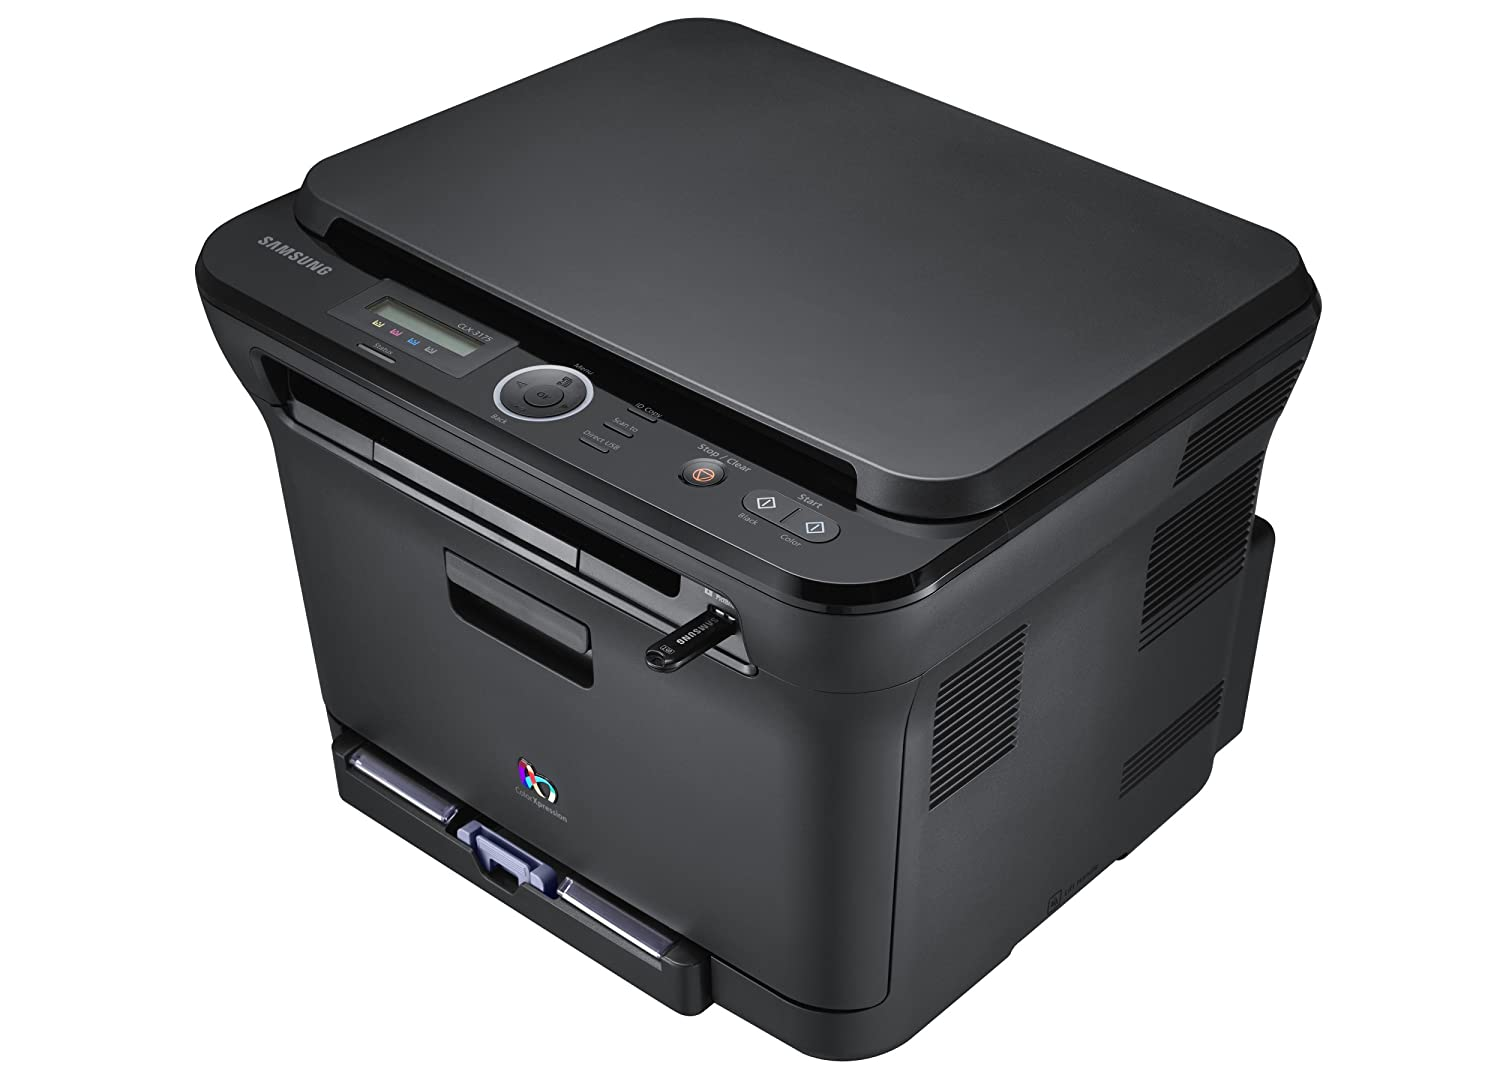 SAMSUNG CLX-3175FW MFP UNIVERSAL SCAN WINDOWS 7 X64 DRIVER DOWNLOAD